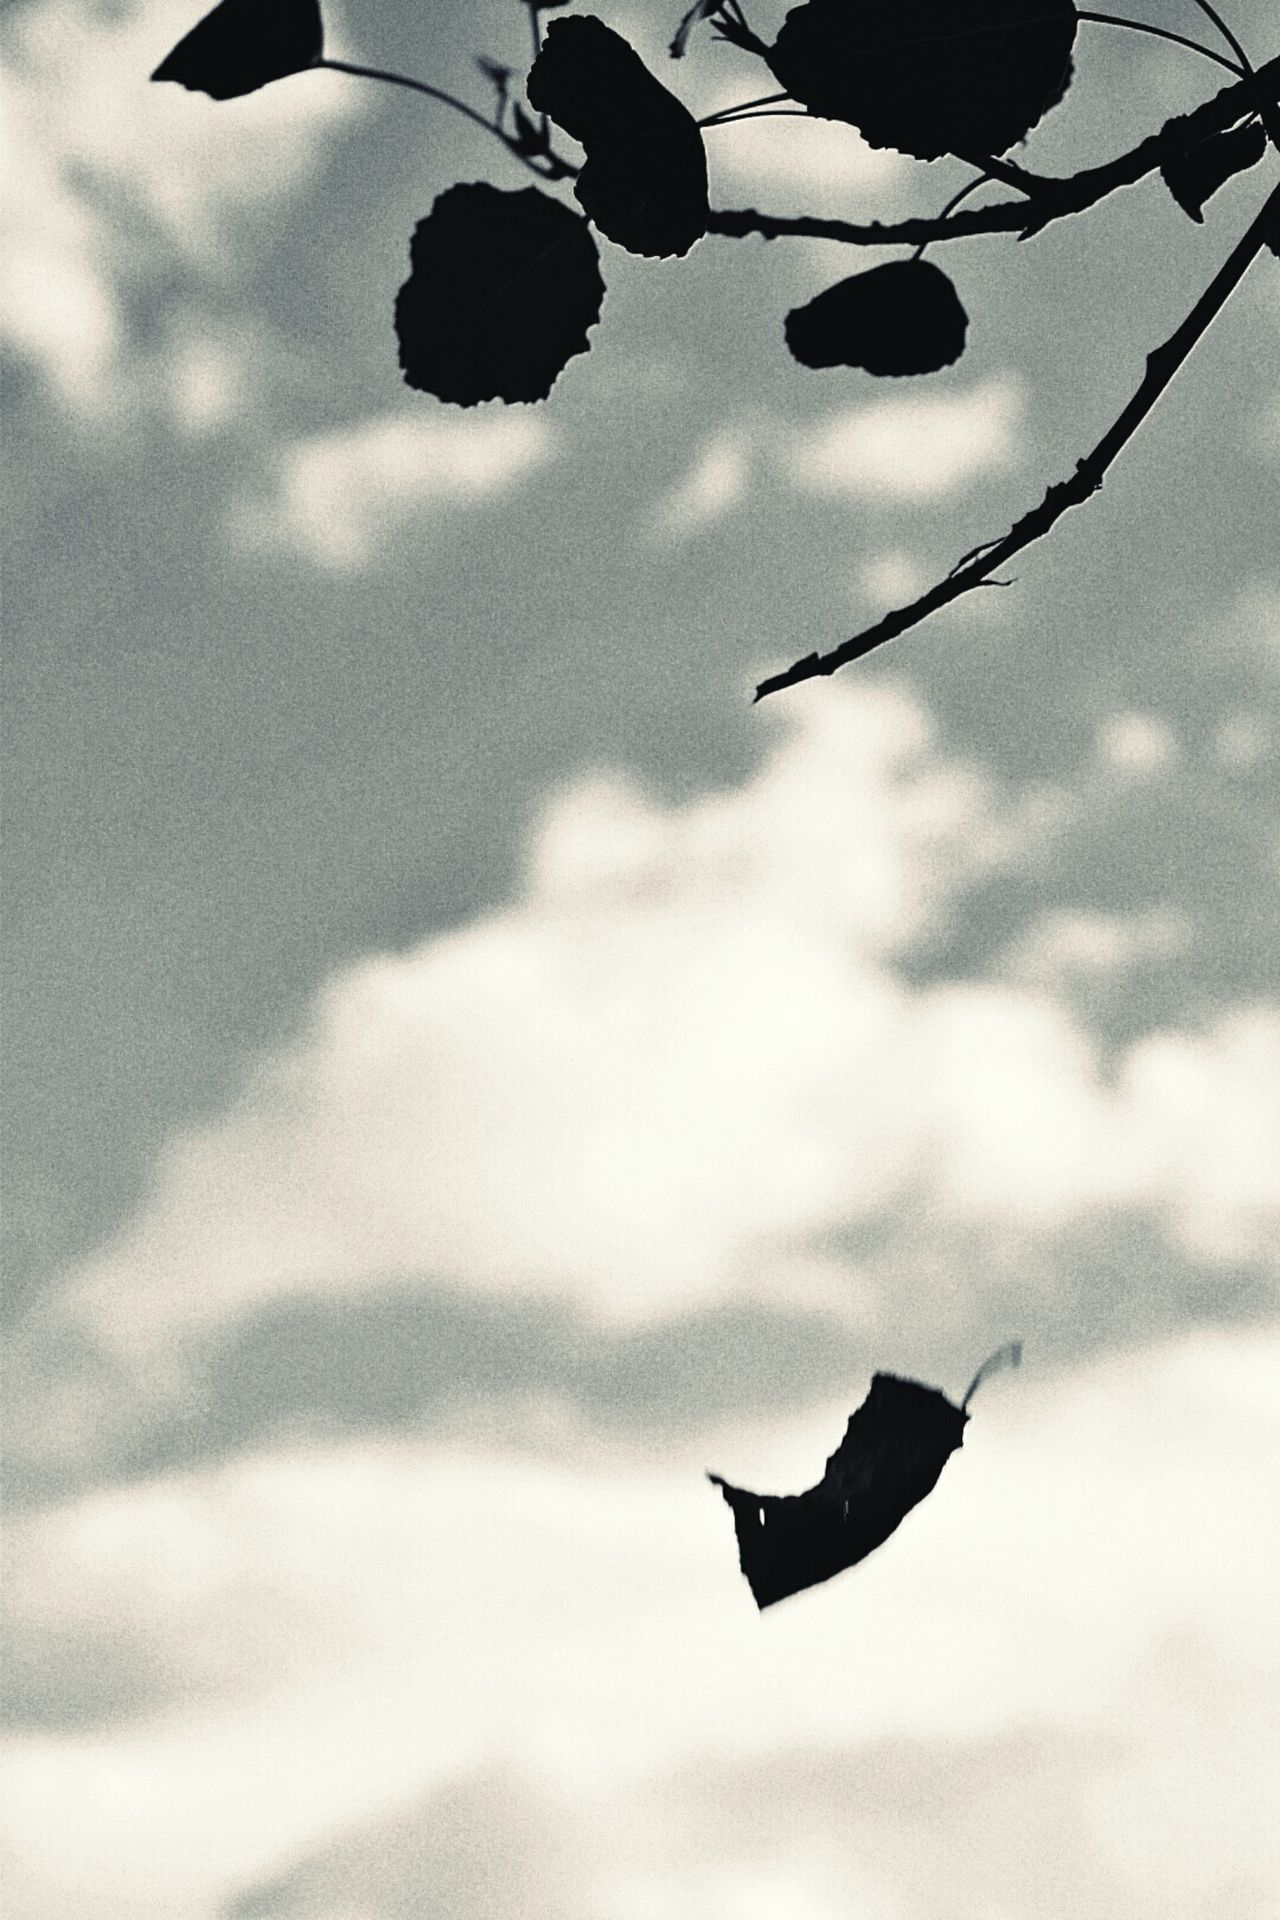 Blackandwhite Lihgts Dark Tranquility Melancholic Landscapes Countryside Sadness Melancholy Detailphotography Darkness No People Outdoors Clouds And Sky Trees Movement Movement Photography Day Fall Summer Sun Sunlight Sunset